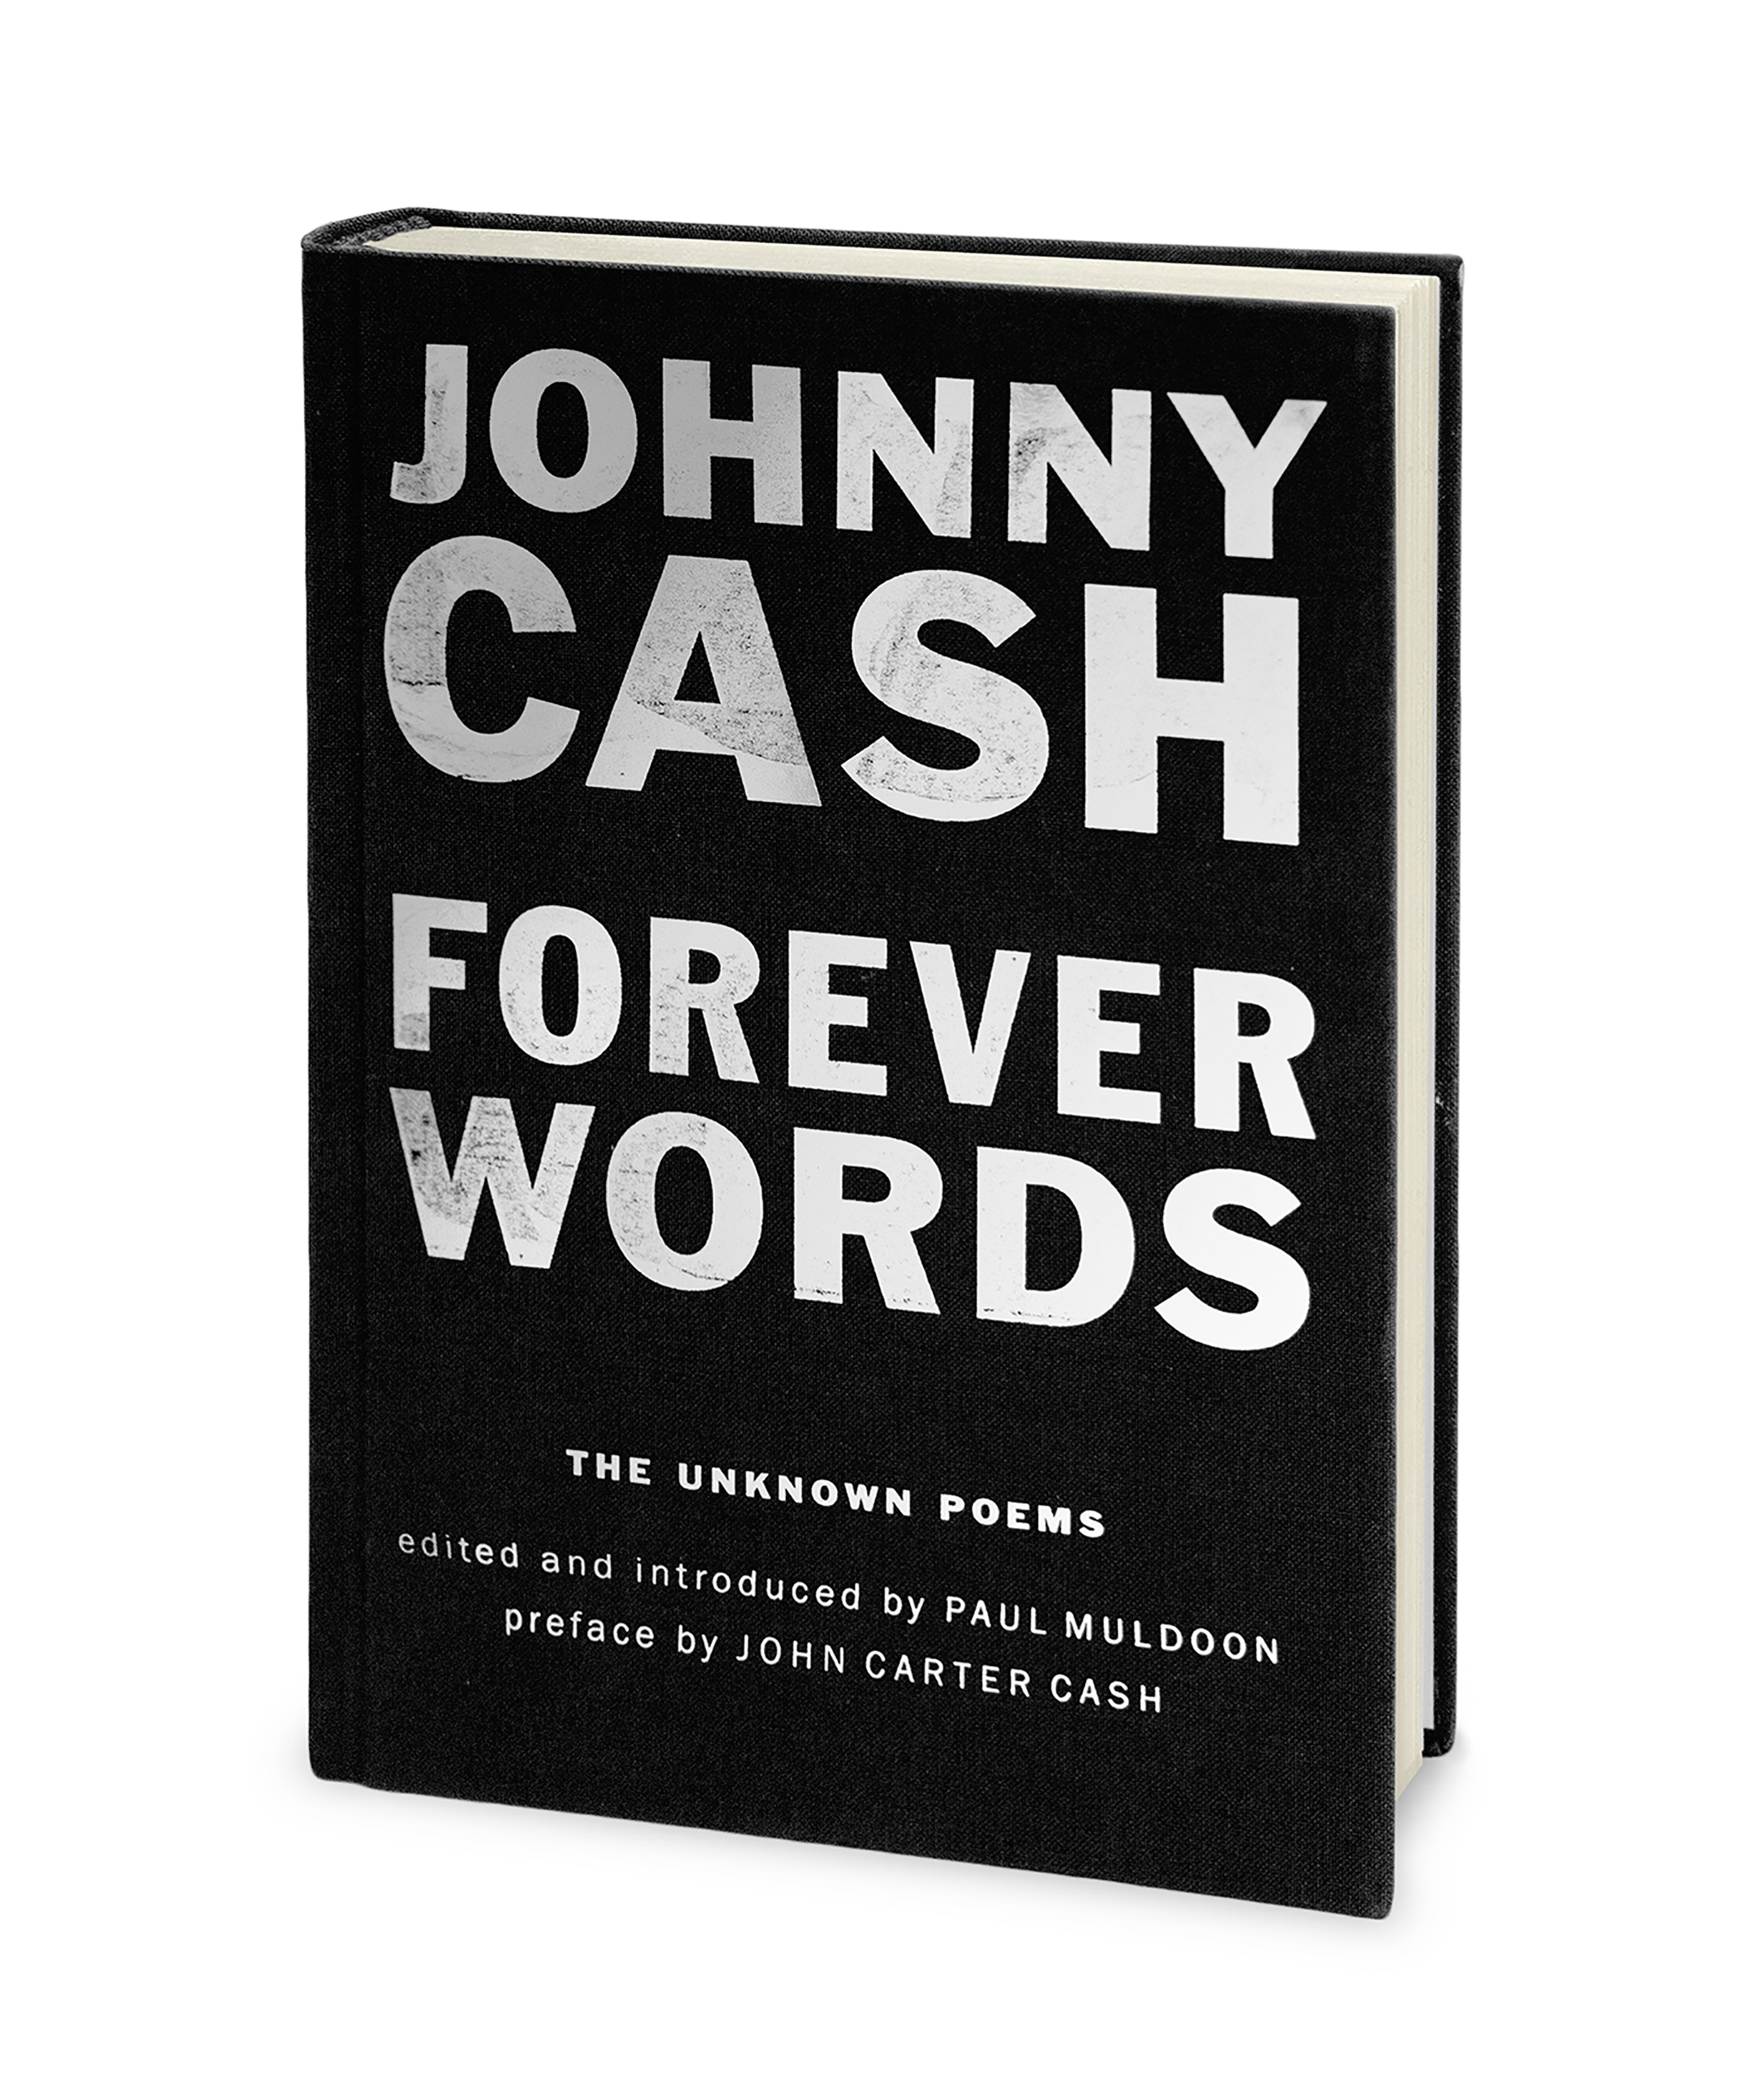 Forever Words - Johnny Cash, foreword by John Carter Cash edited by ...